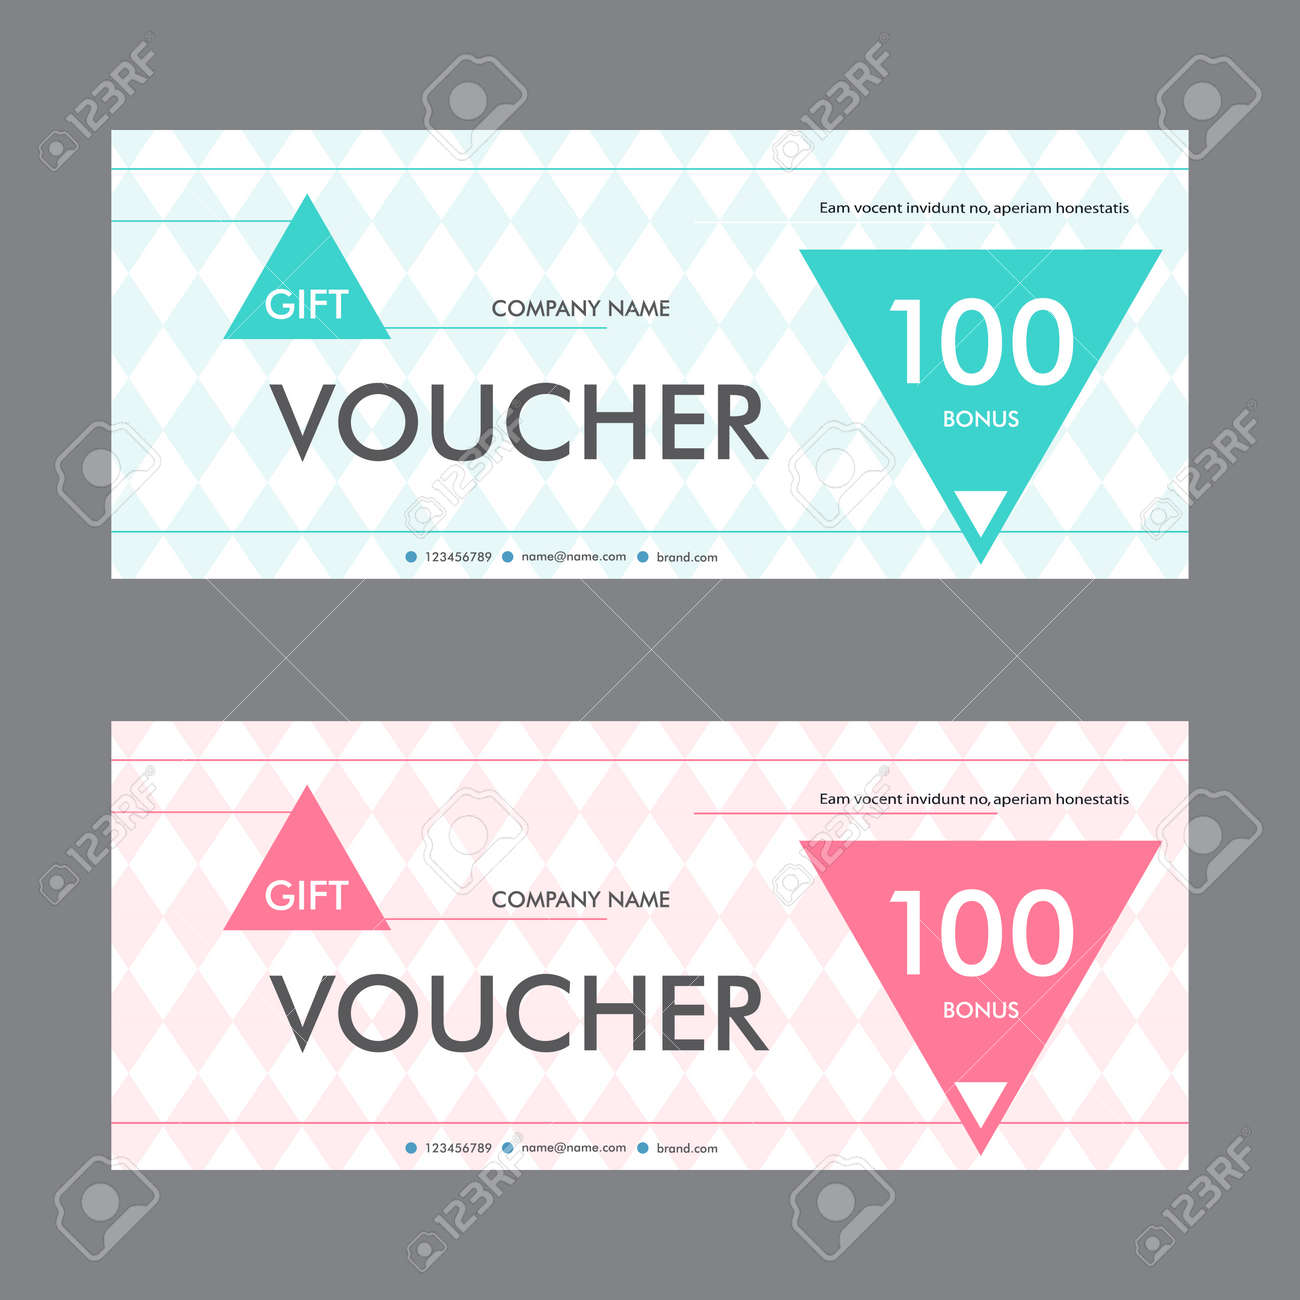 Vector illustration. Template gift voucher with background of treugolnymh elements. Beautiful design certificate. - 51640116